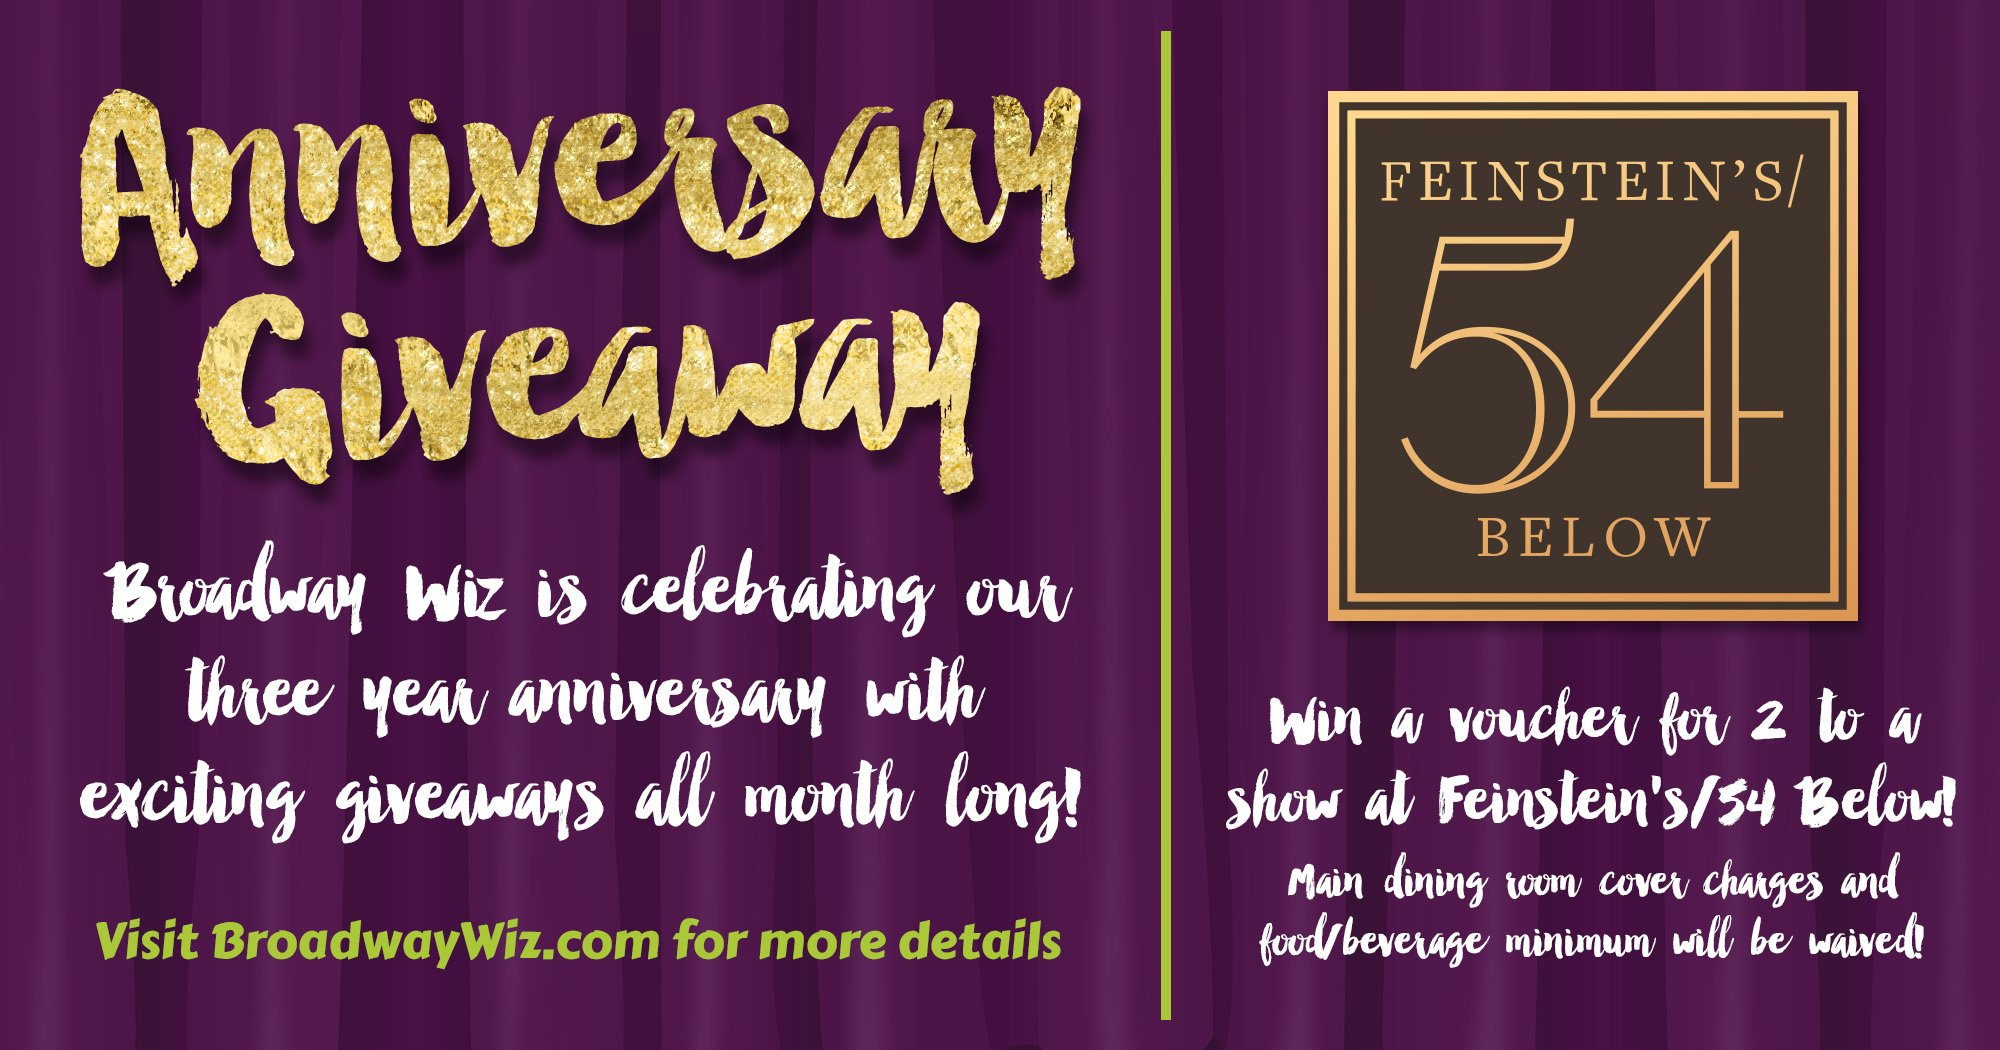 54 Below Giveaway